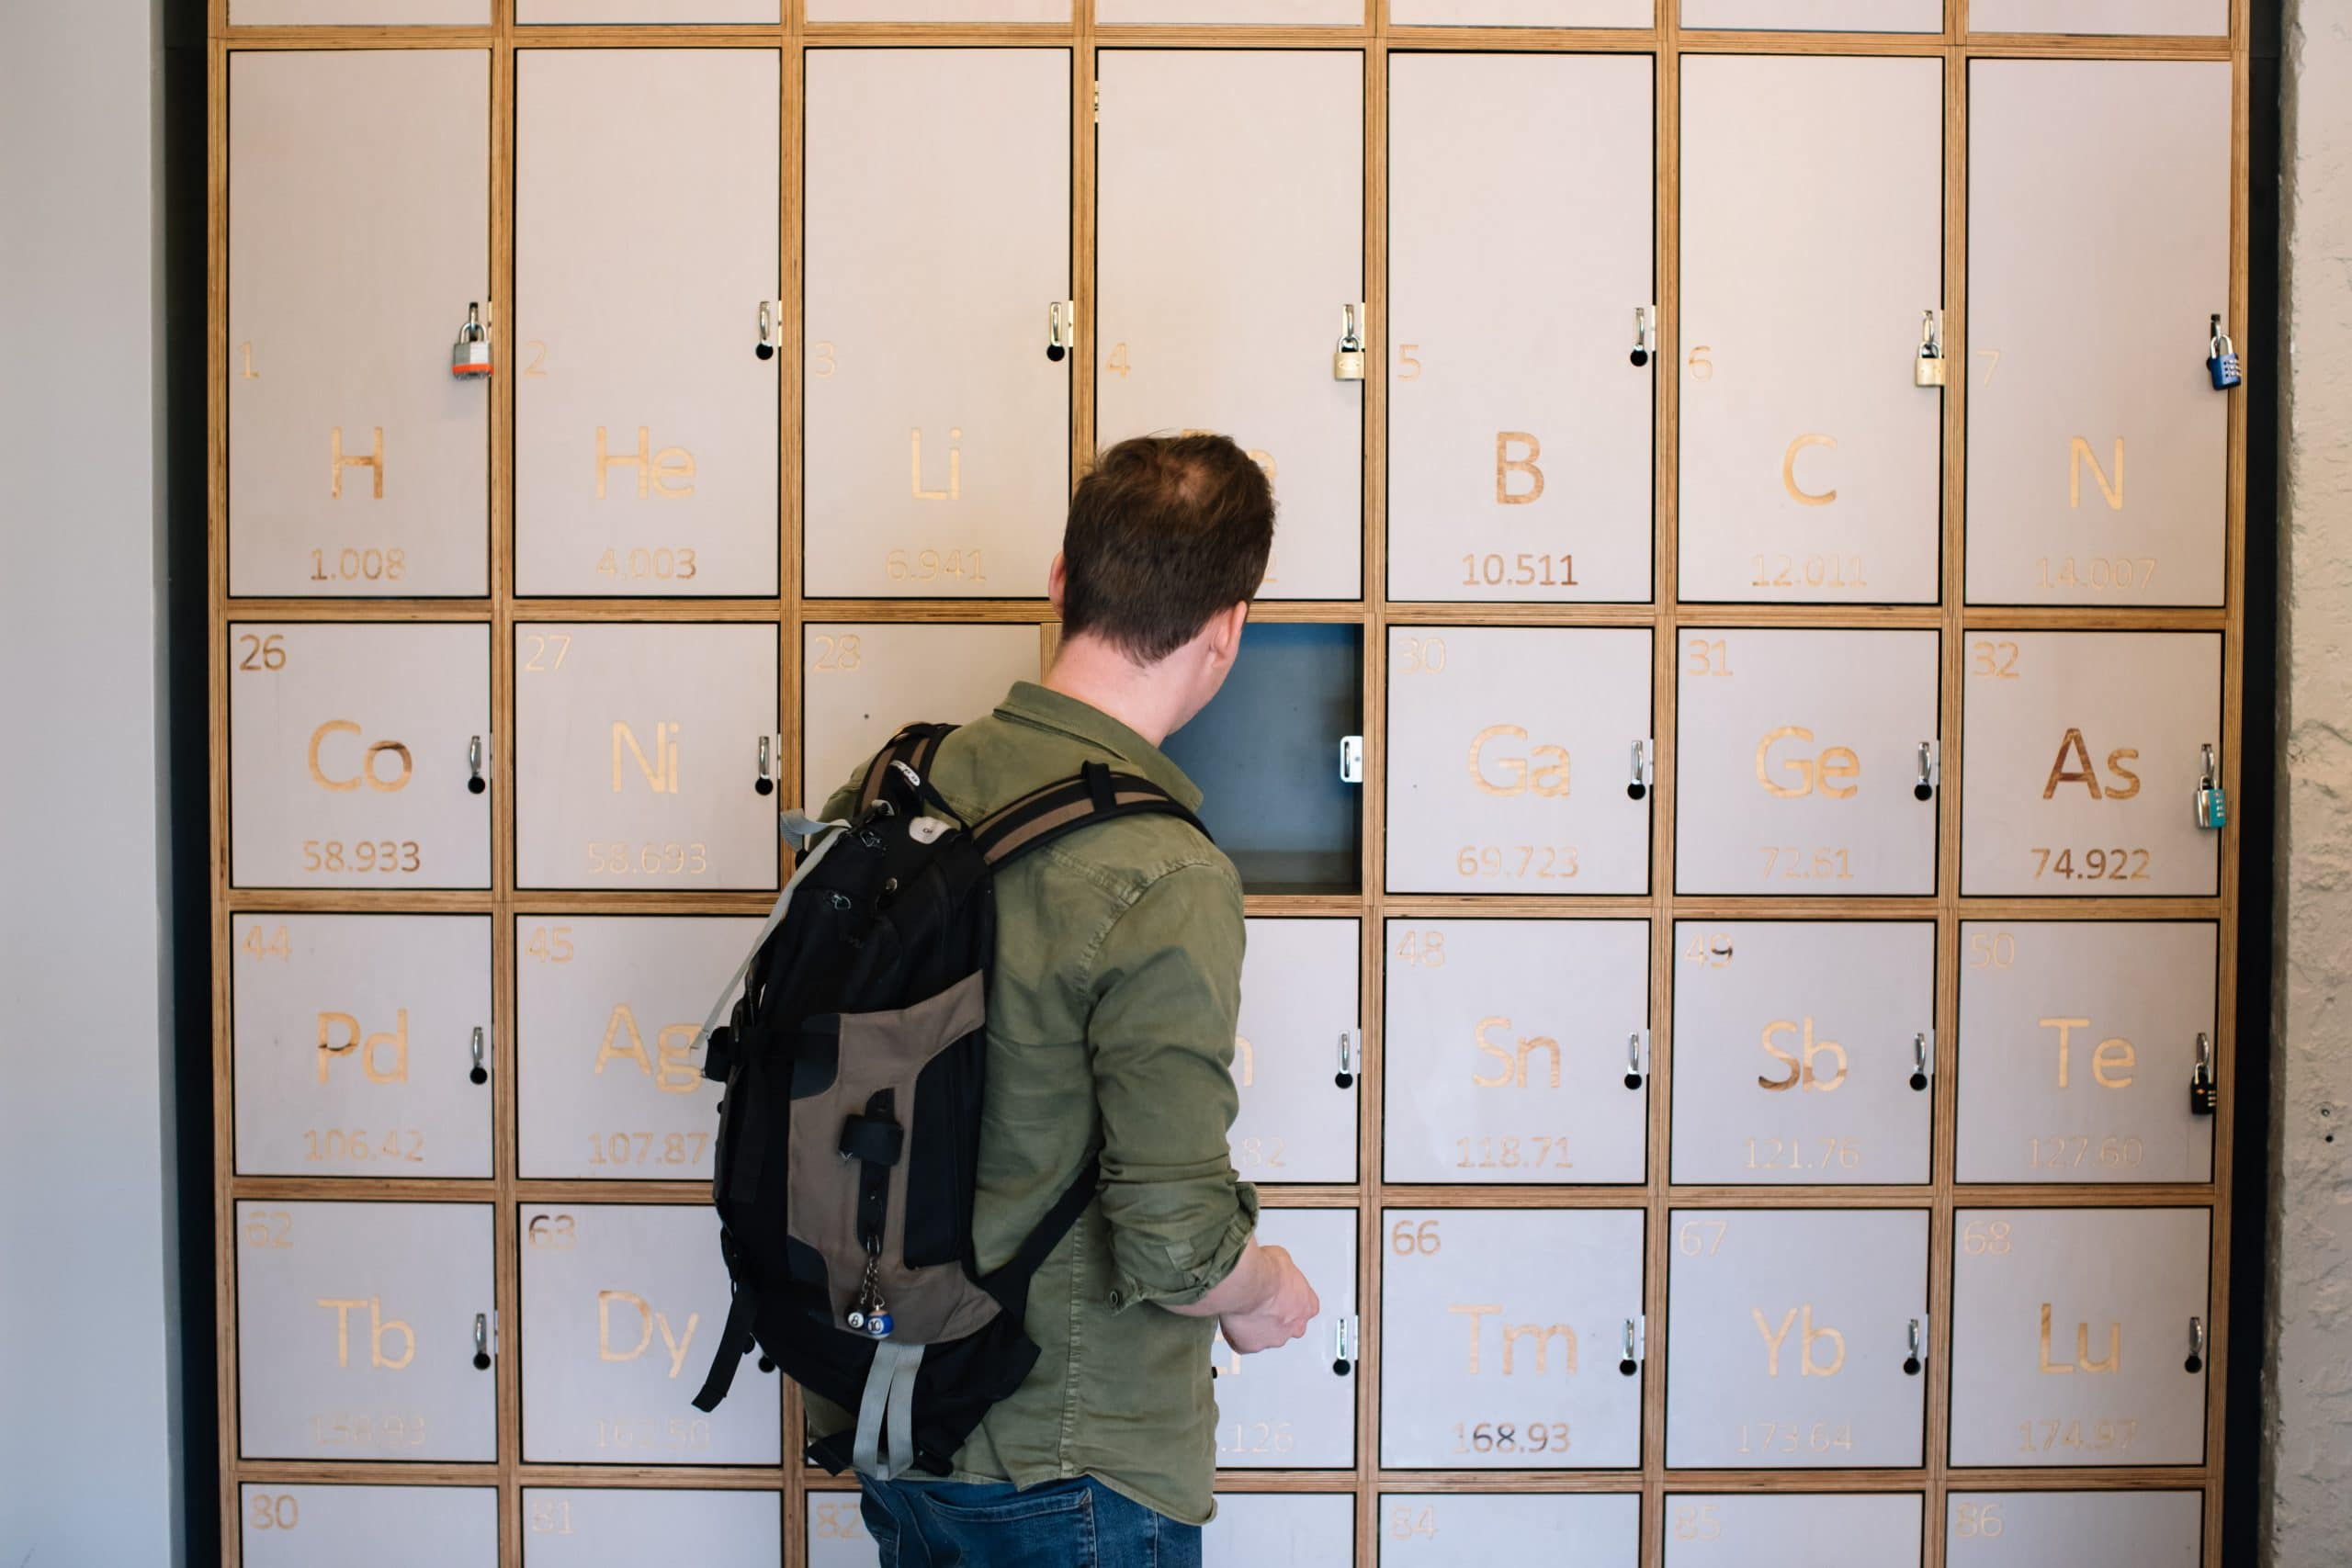 Clink Hostels Lockers | How to make the most of Solo Travel | Clink Hostels